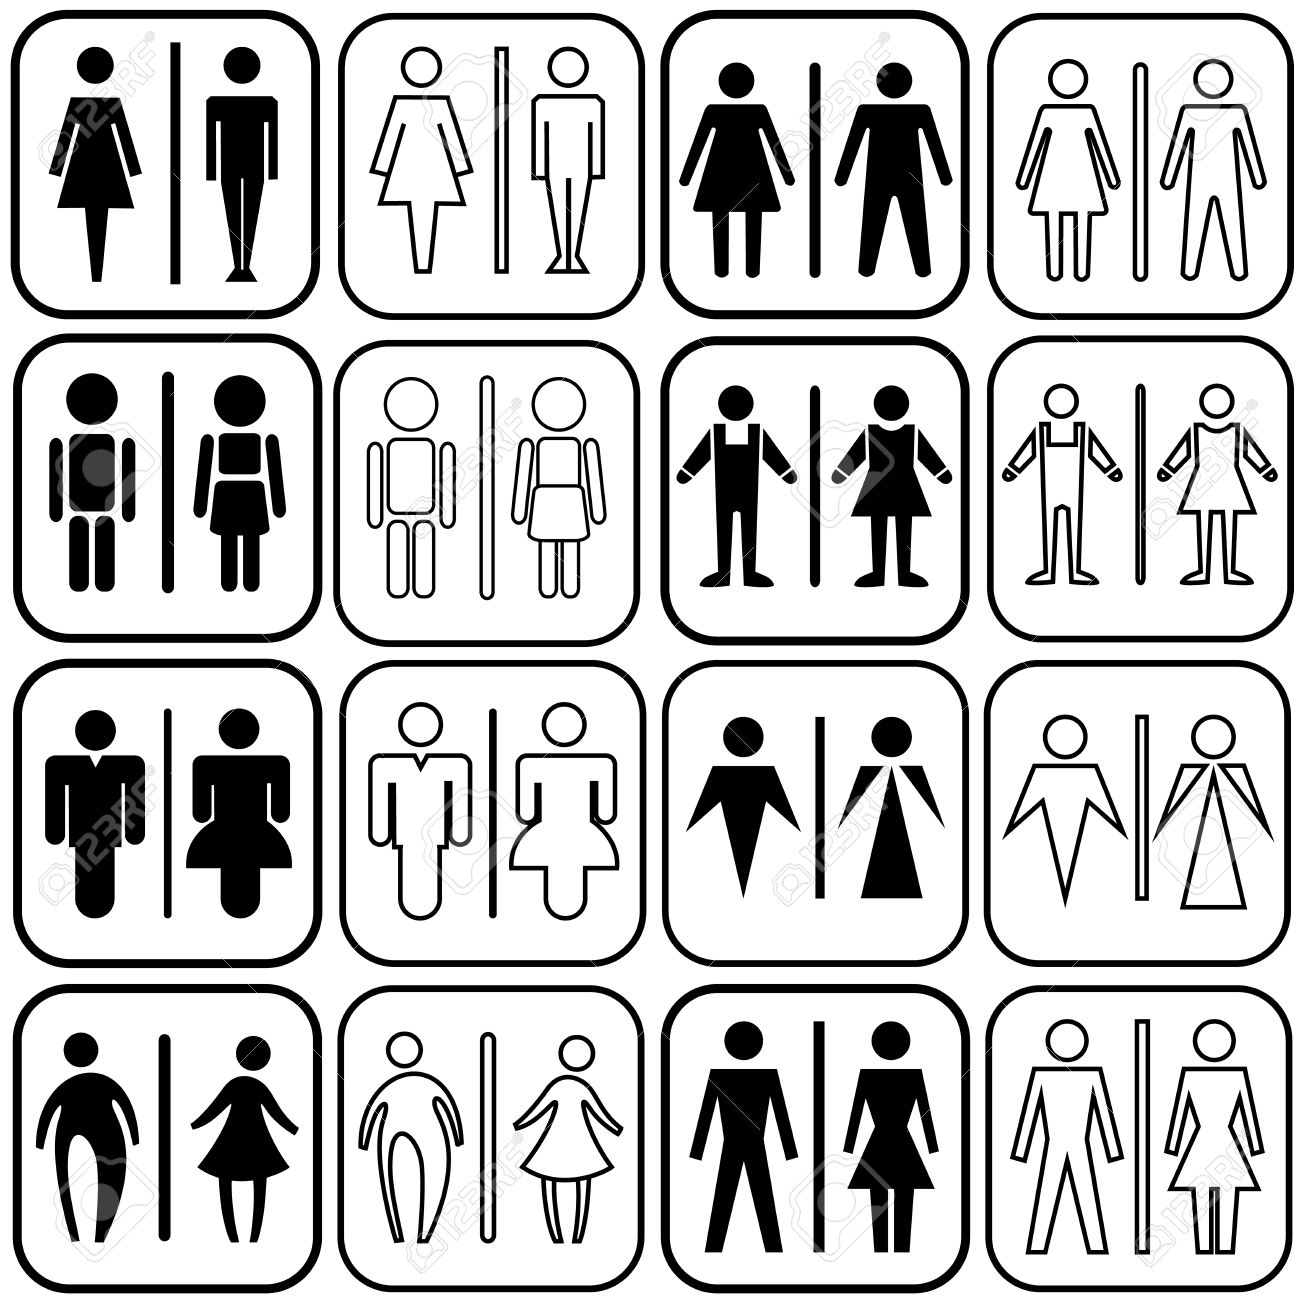 Bathroom Sign Vector Style modern style of toilet sign with men, women in art style design